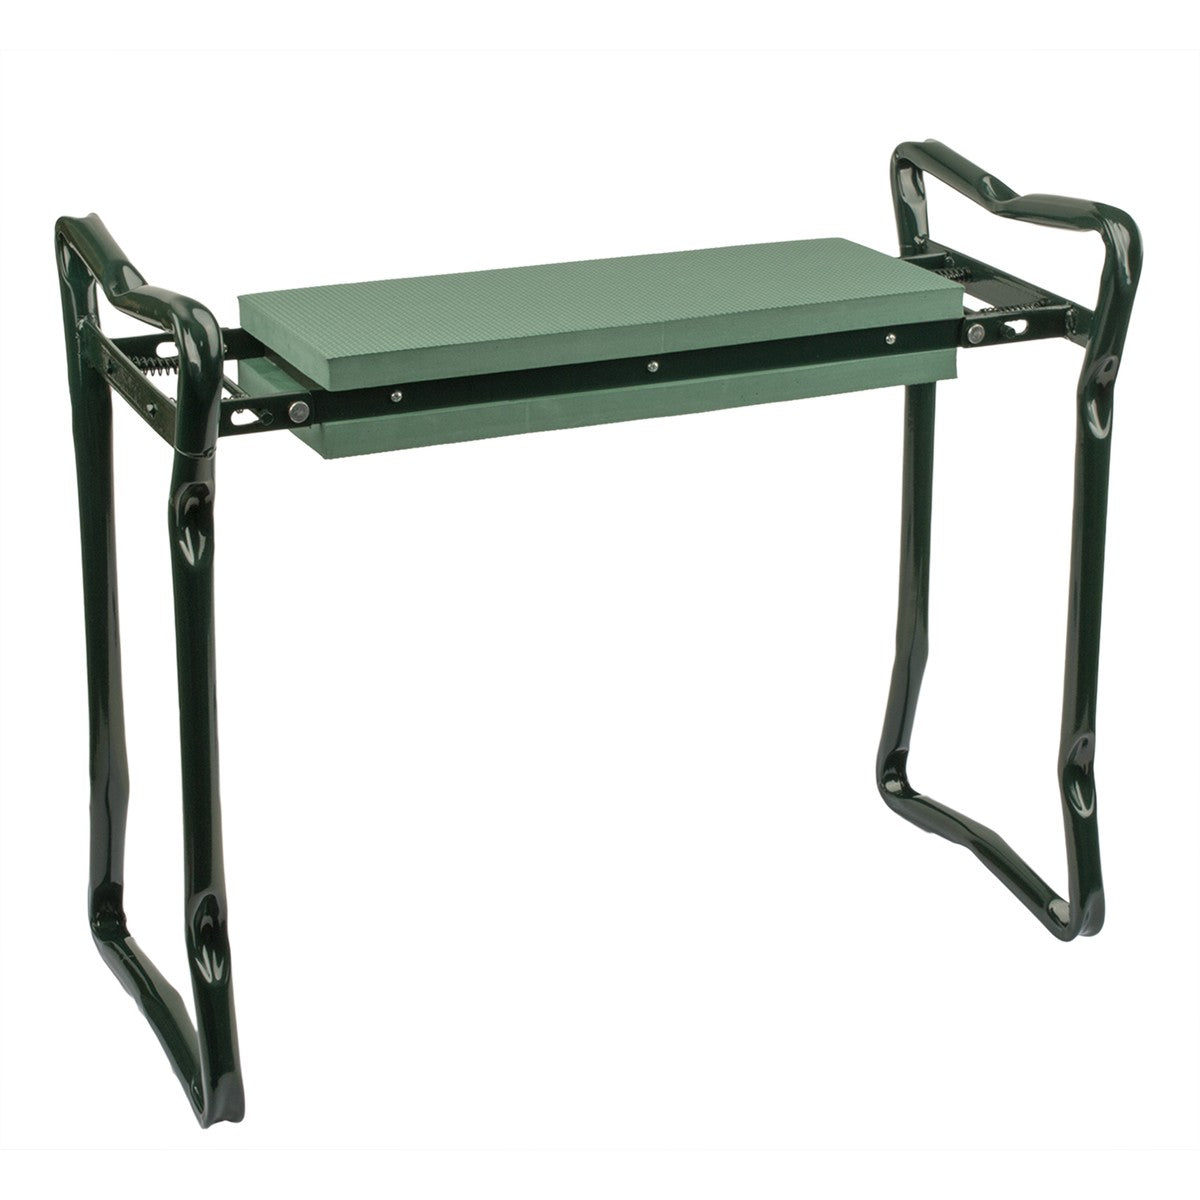 KNEELER AND SEAT WITH HANDLES